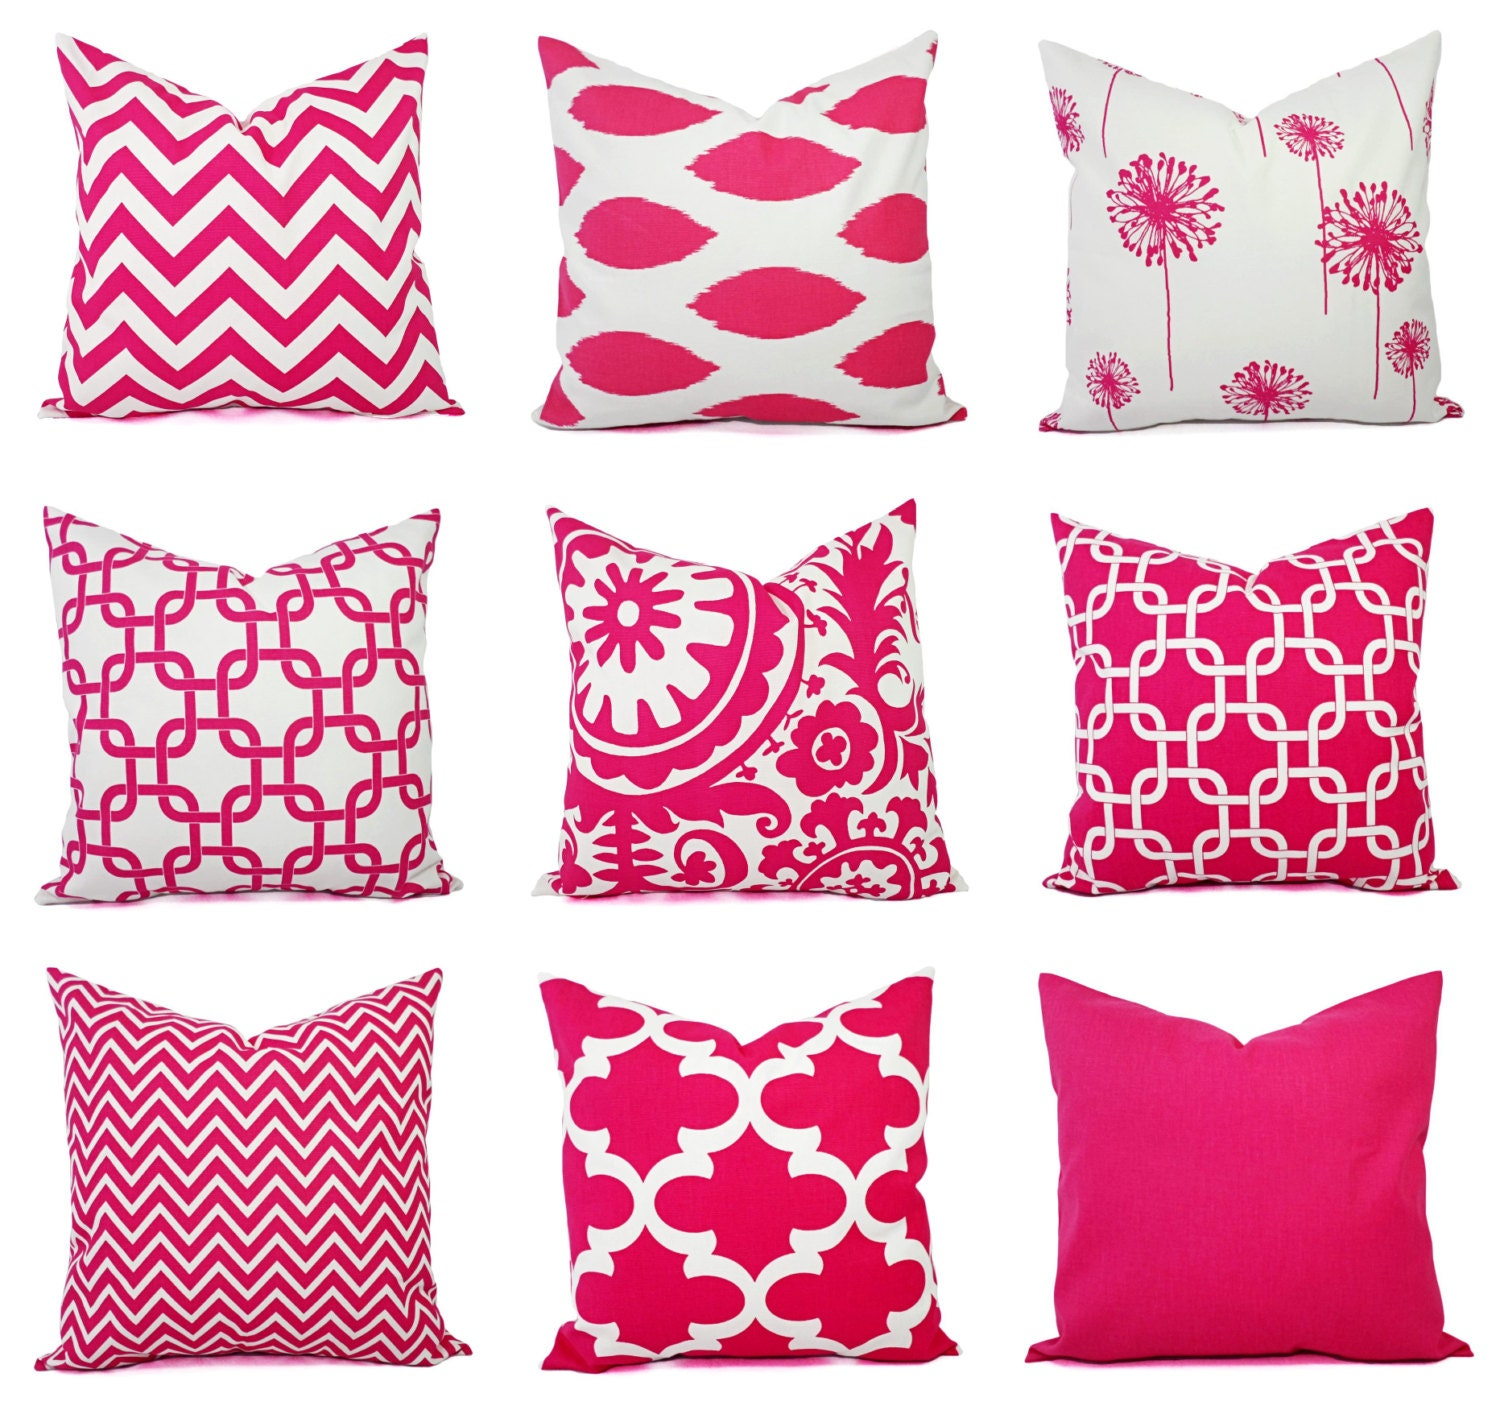 Decorative Pillow Pink : Hot Pink Pillow Cover Pink Decorative Throw Pillow Cover